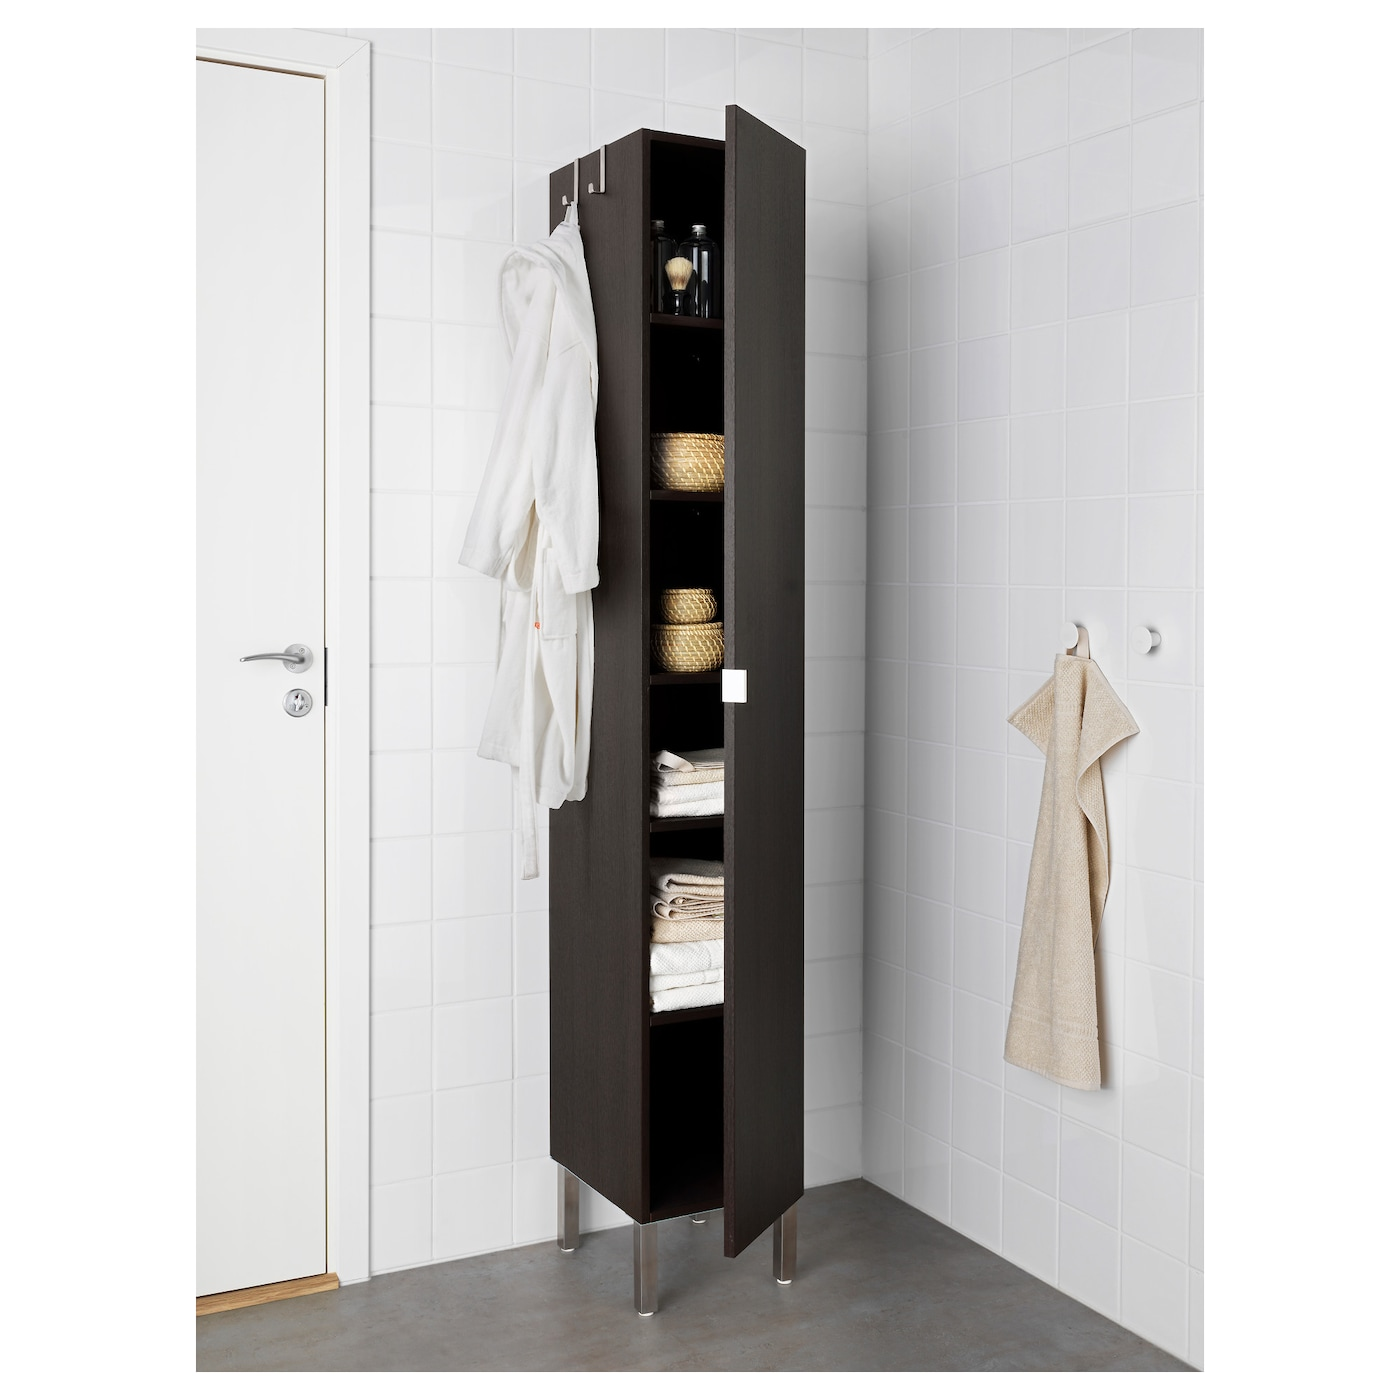 IKEA LILLÅNGEN high cabinet with 1 door Perfect where space is limited since the cabinet is shallow.